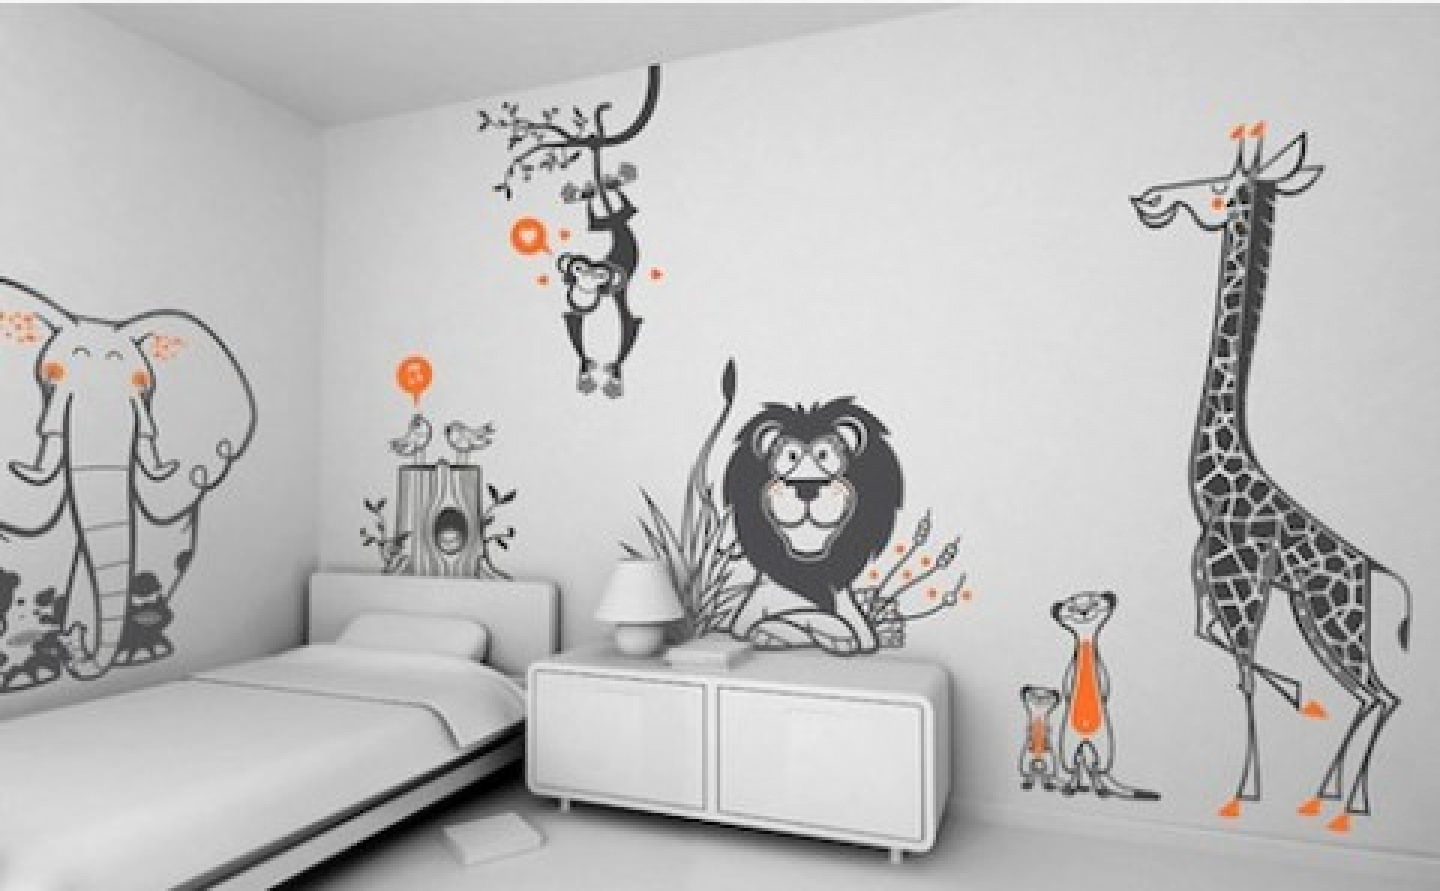 24 kids wallpapers images pictures design trends for Childrens bedroom wall designs